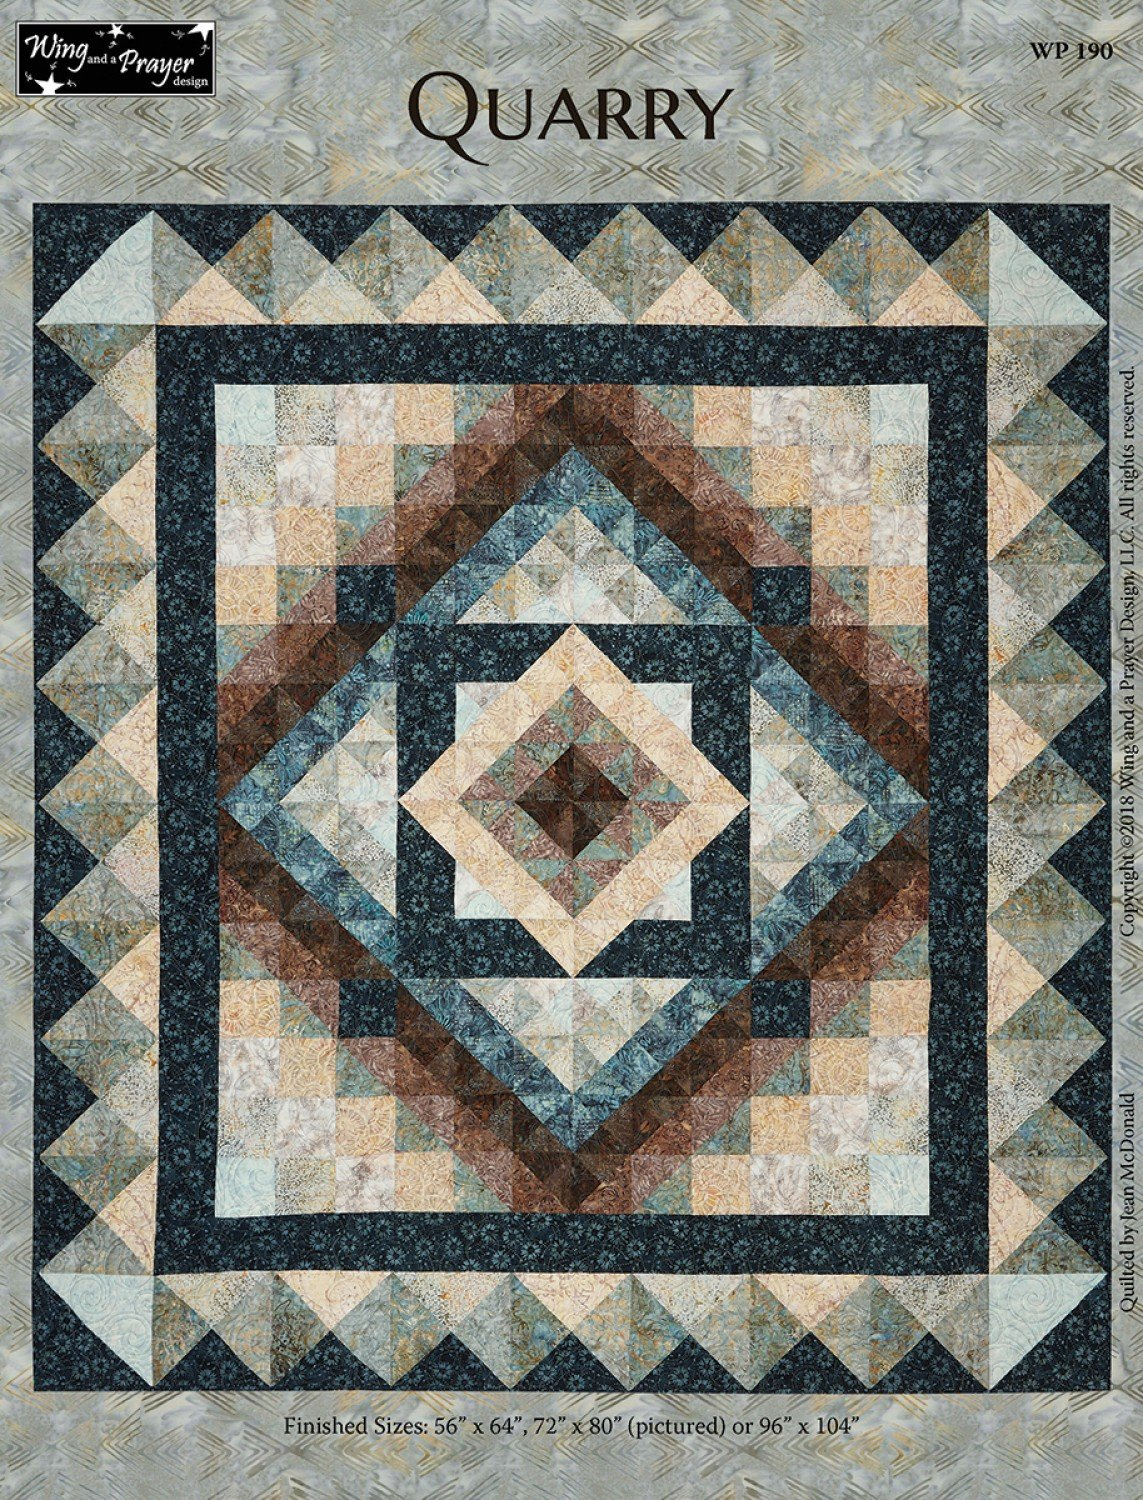 Quarry Throw Quilt Kit 72 x 80 with Pattern